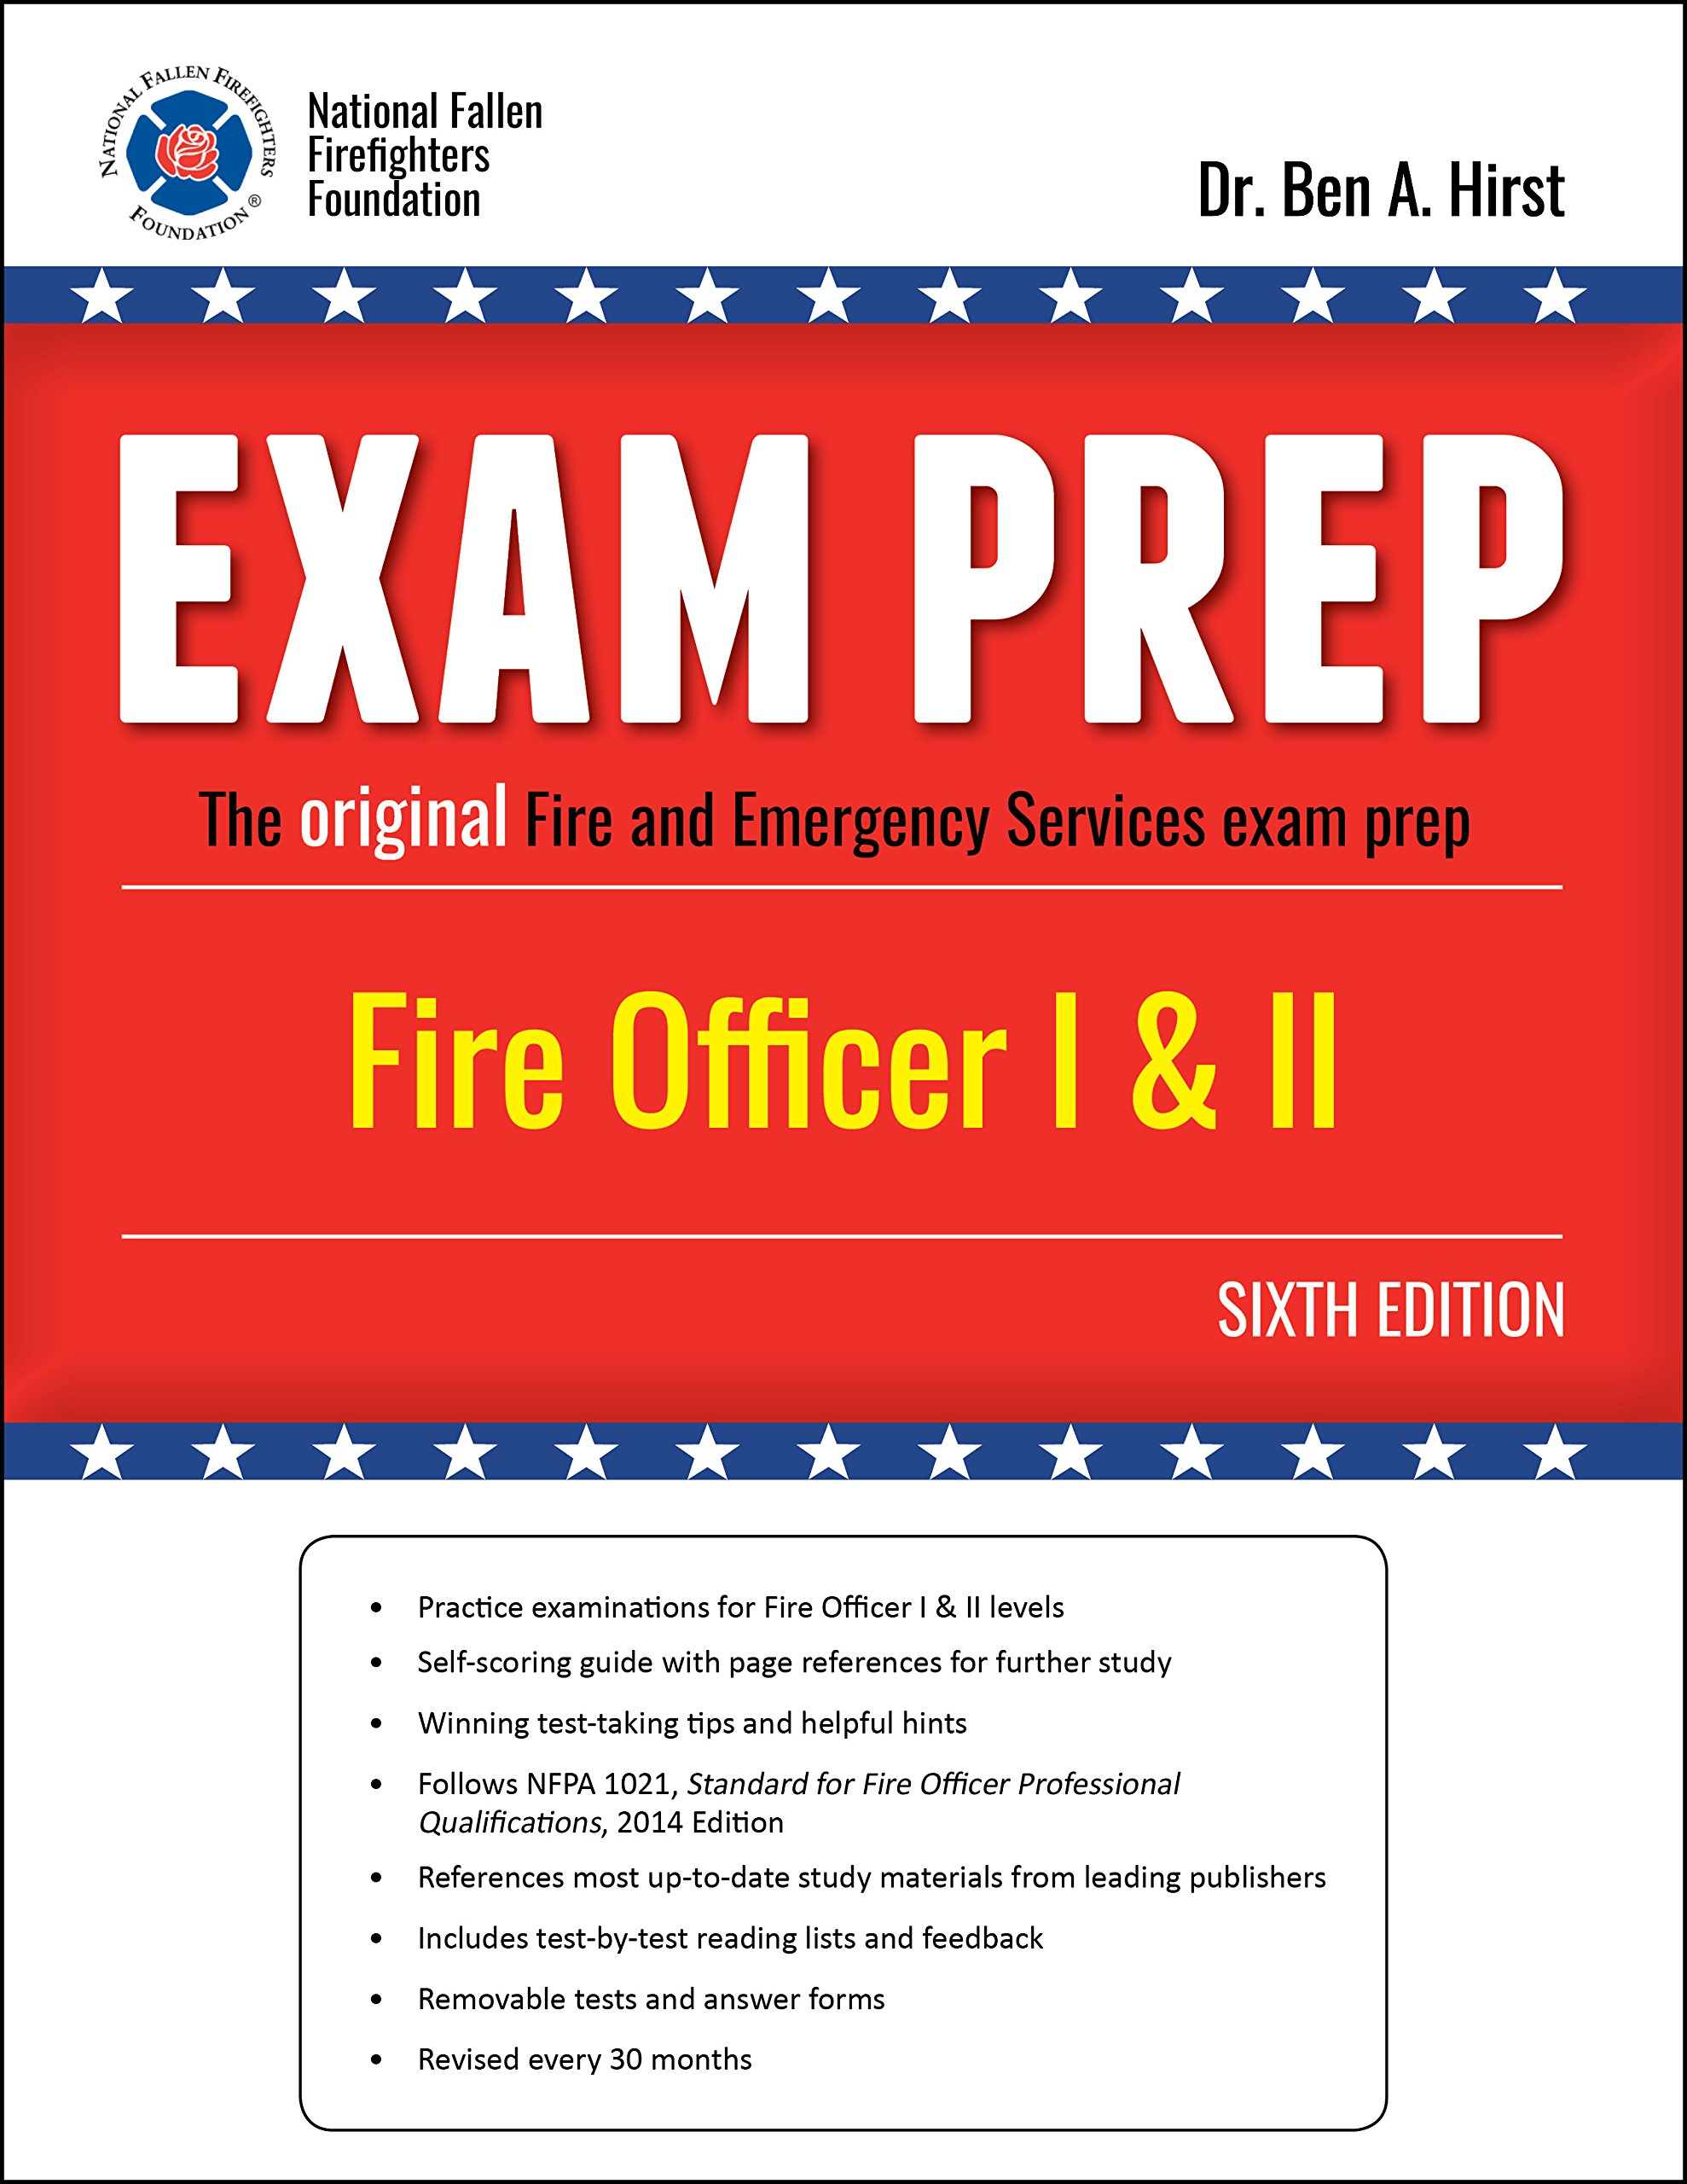 exam prep fire officer i ii 6th edition dr ben hirst